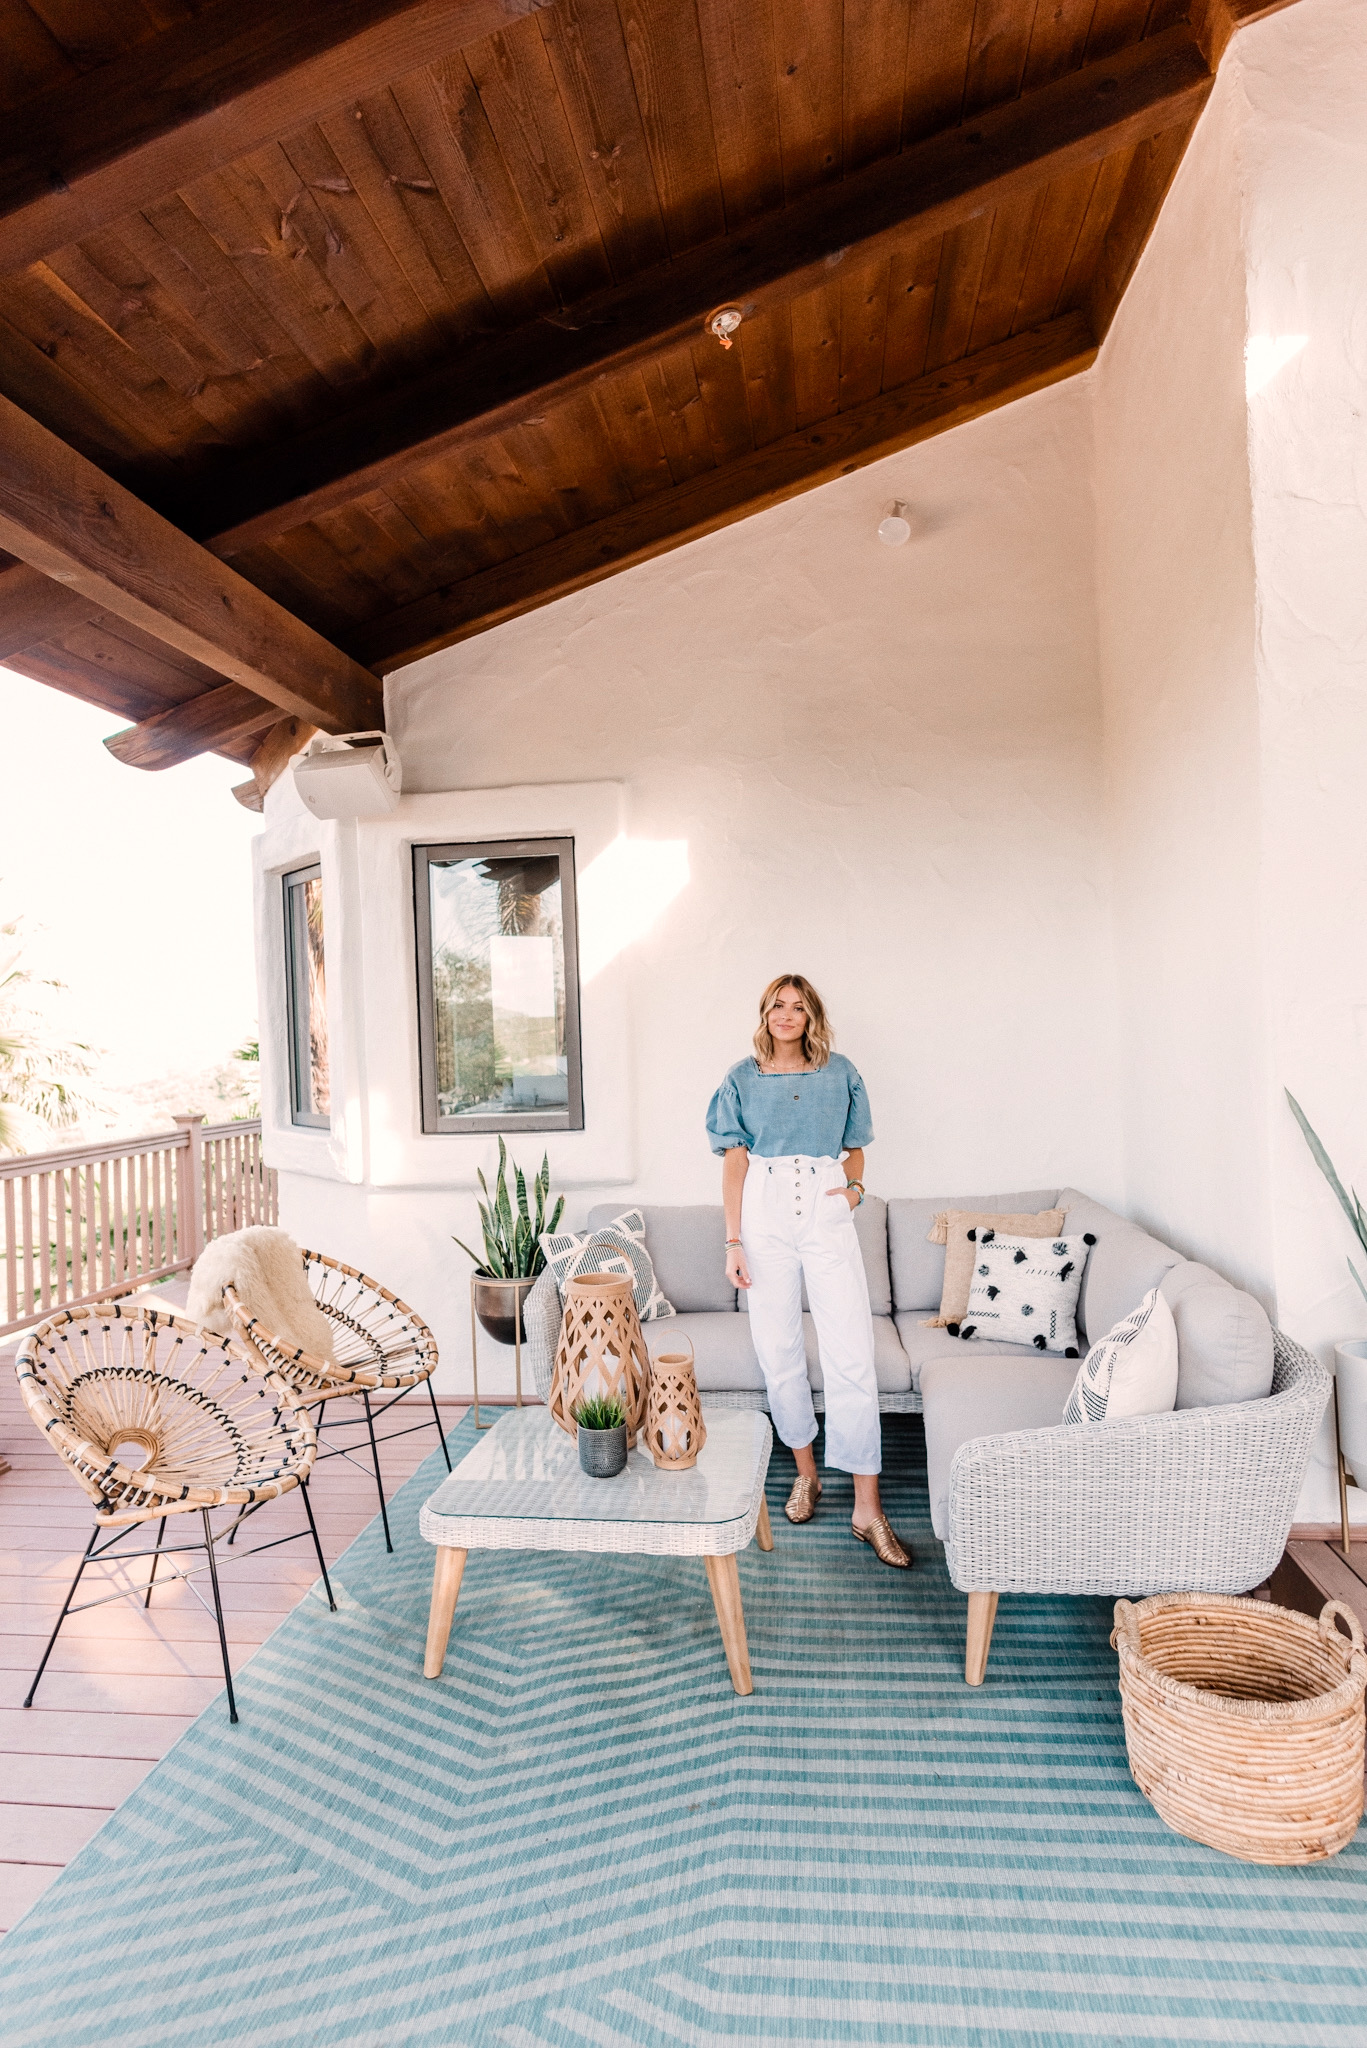 CB2 OUTDOOR DECOR featured by top San Diego lifestyle blogger, Navy Grace. | CB2 Furniture by popular San Diego life and style blog, Navy Grace: image of a woman standing outside on her patio decorated with a CB2 hurricane lantern, Seminyak Gray Planter, snake tongue plants, blue outdoor rug, woven wicker outdoor couch, woven wicker coffee table, woven basket, and Rattan chairs.